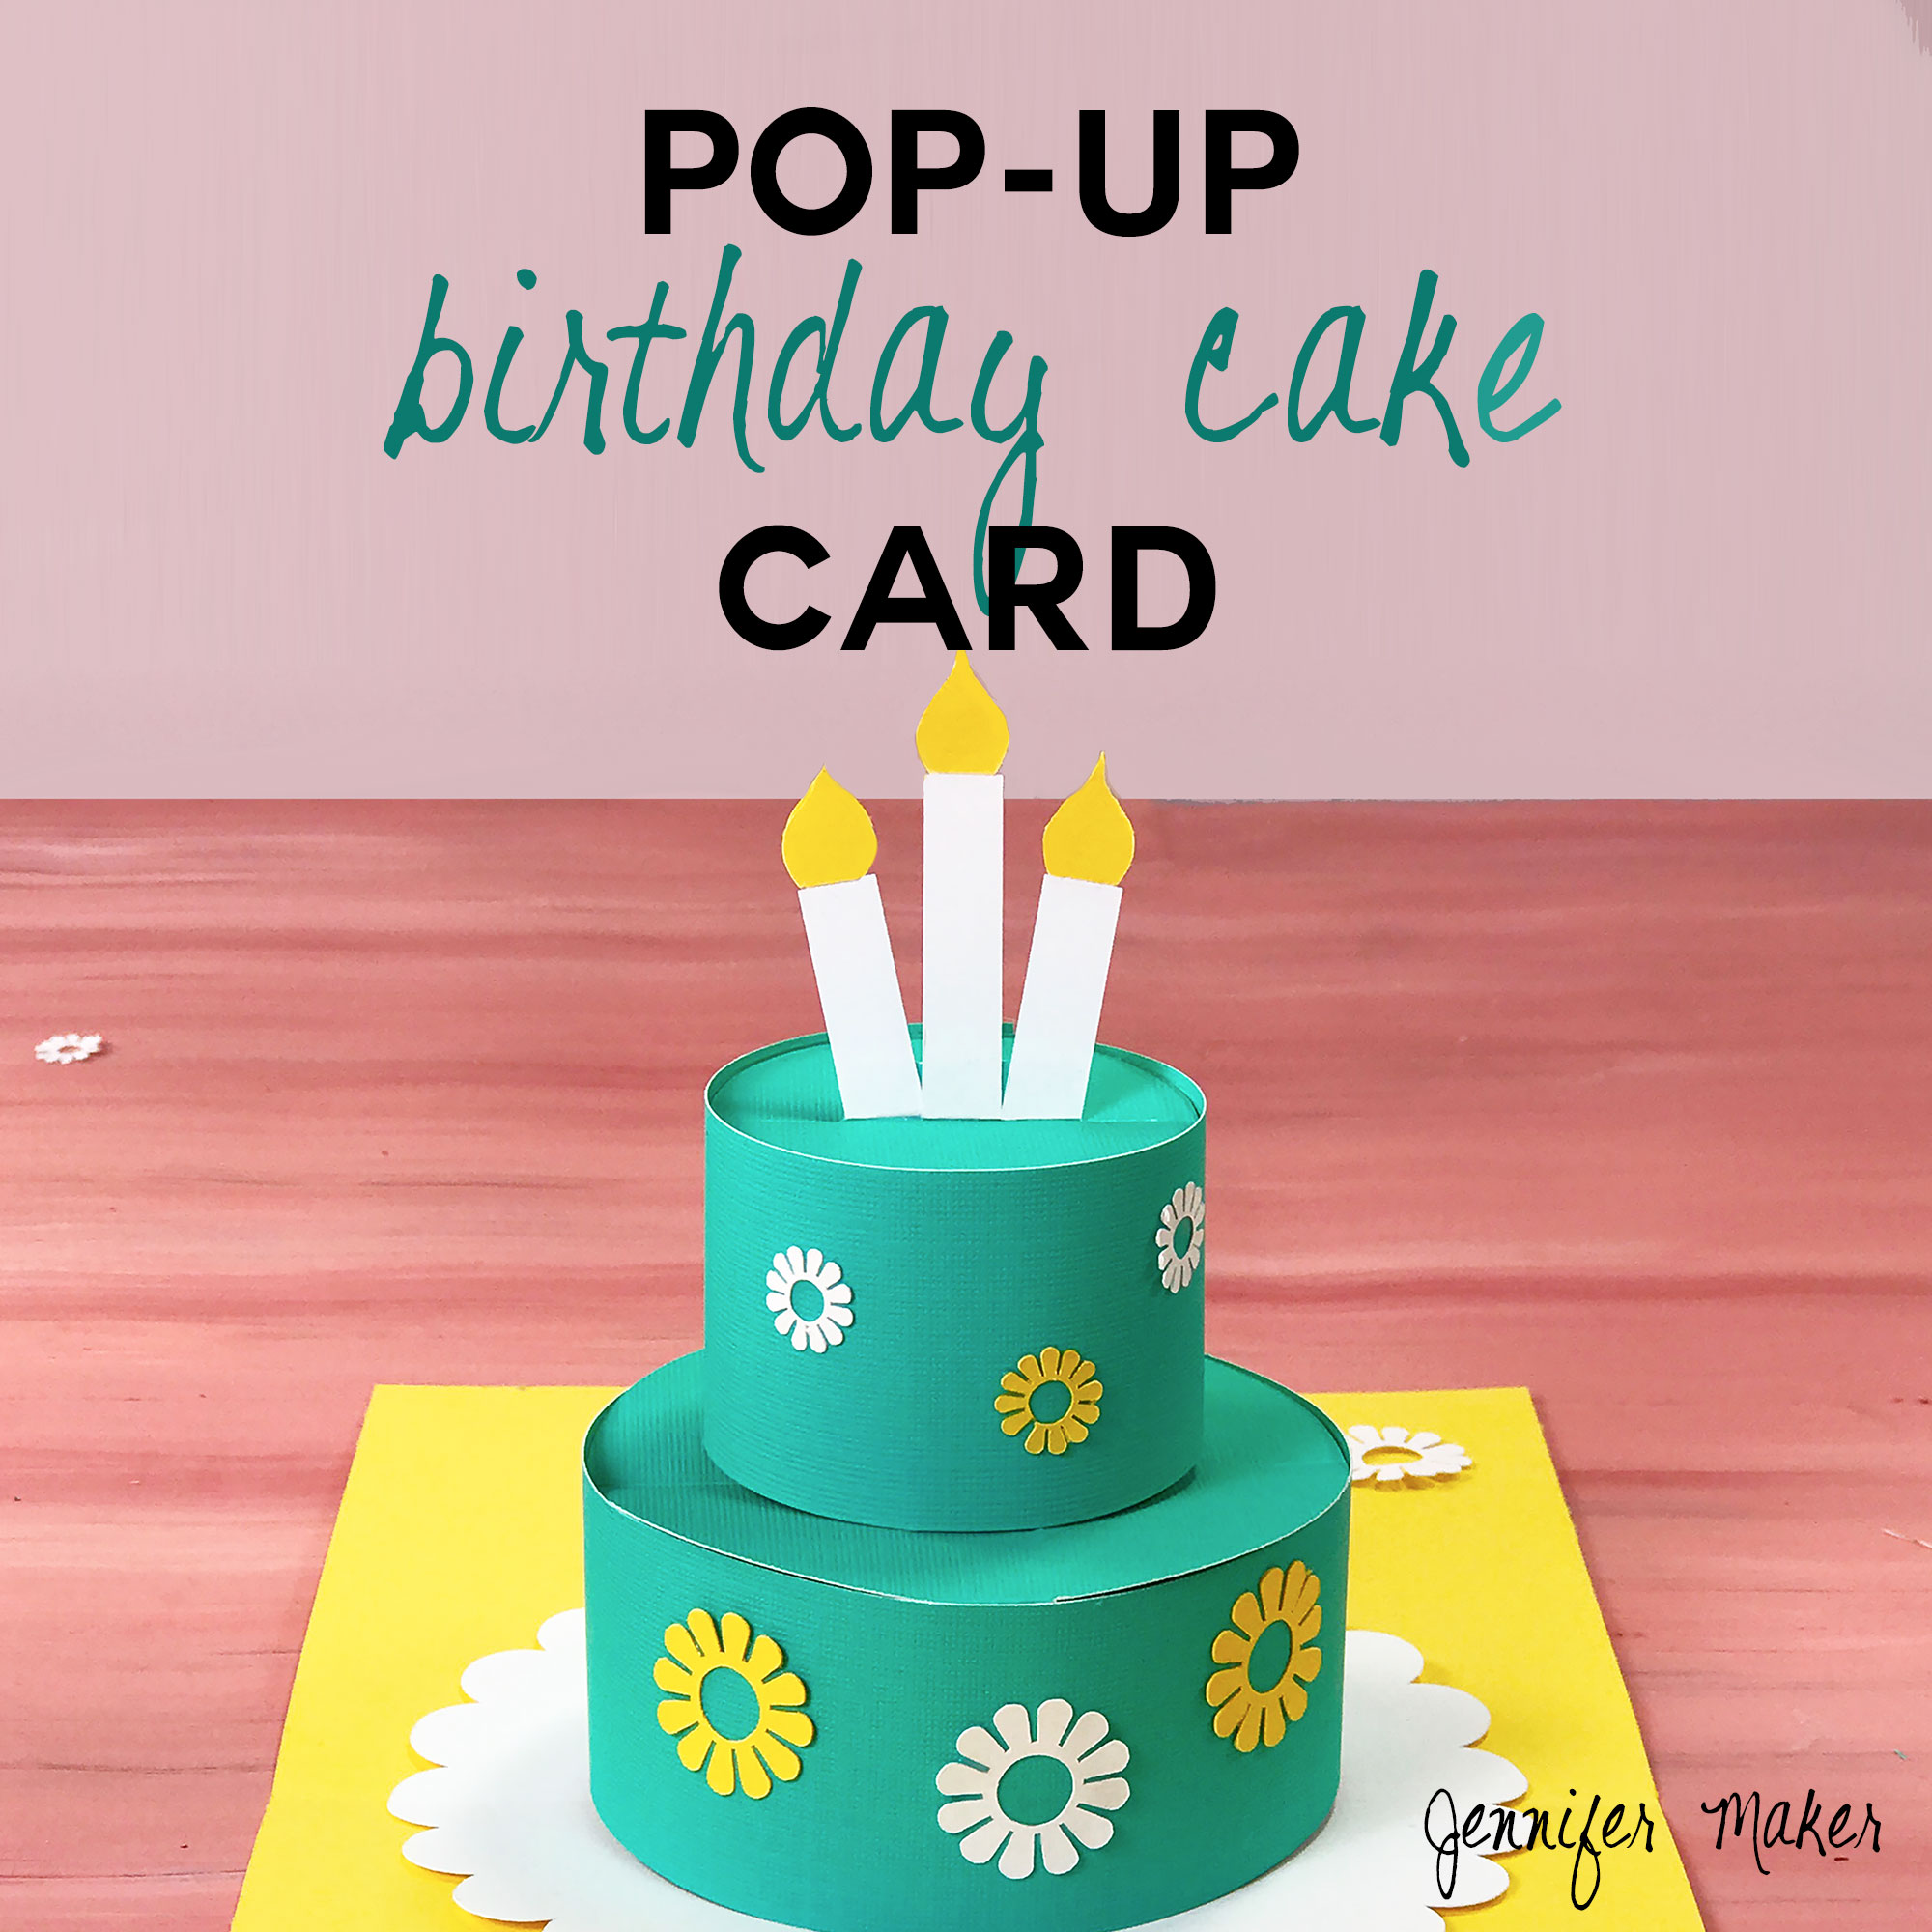 How To Make A Pop Up Birthday Cake Card